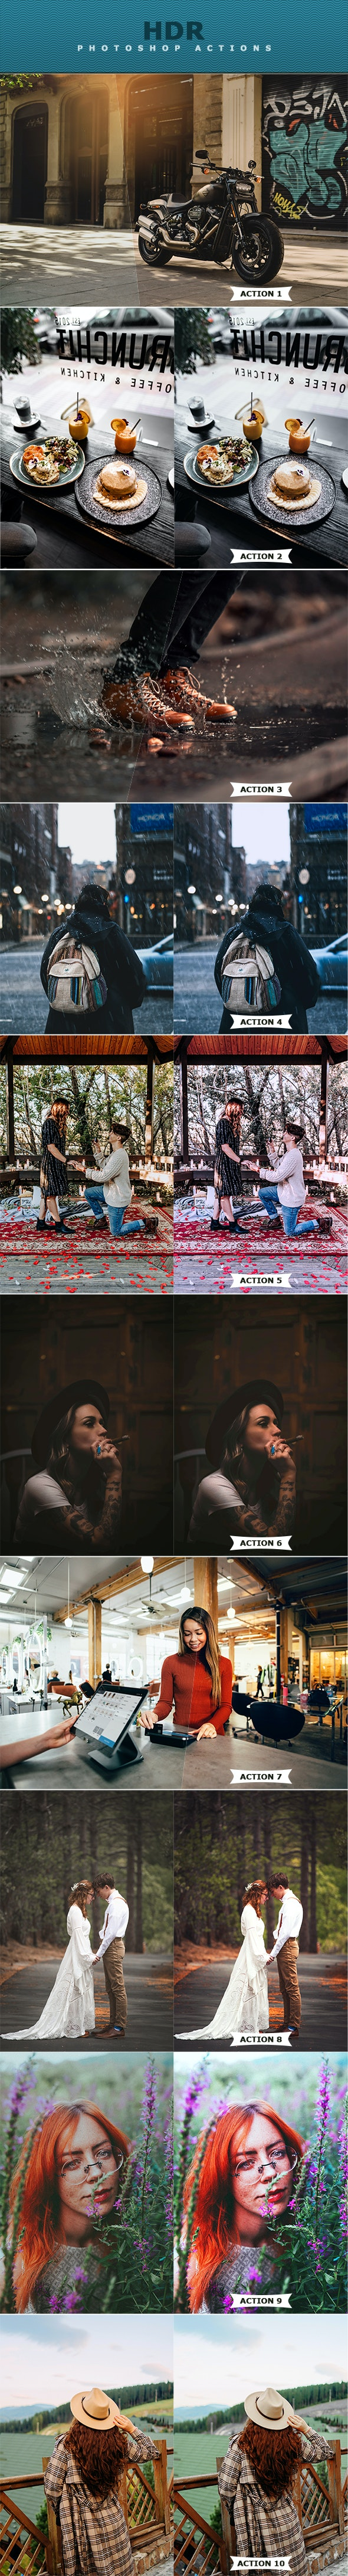 HDR Photoshop Actions - Photo Effects Actions